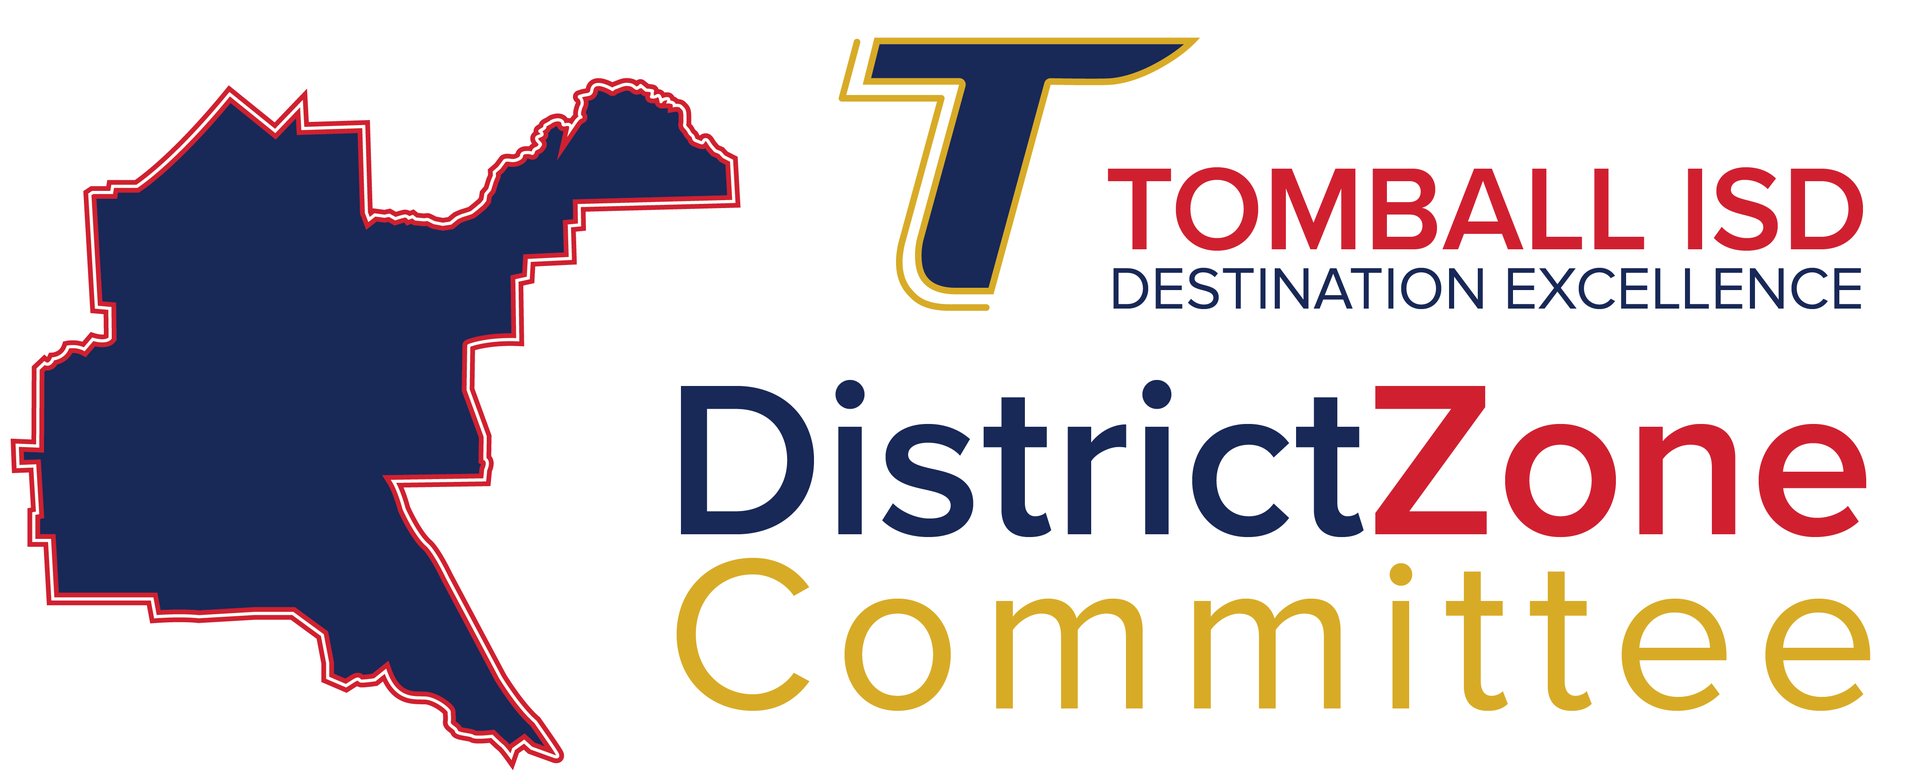 District Zone Committee graphic